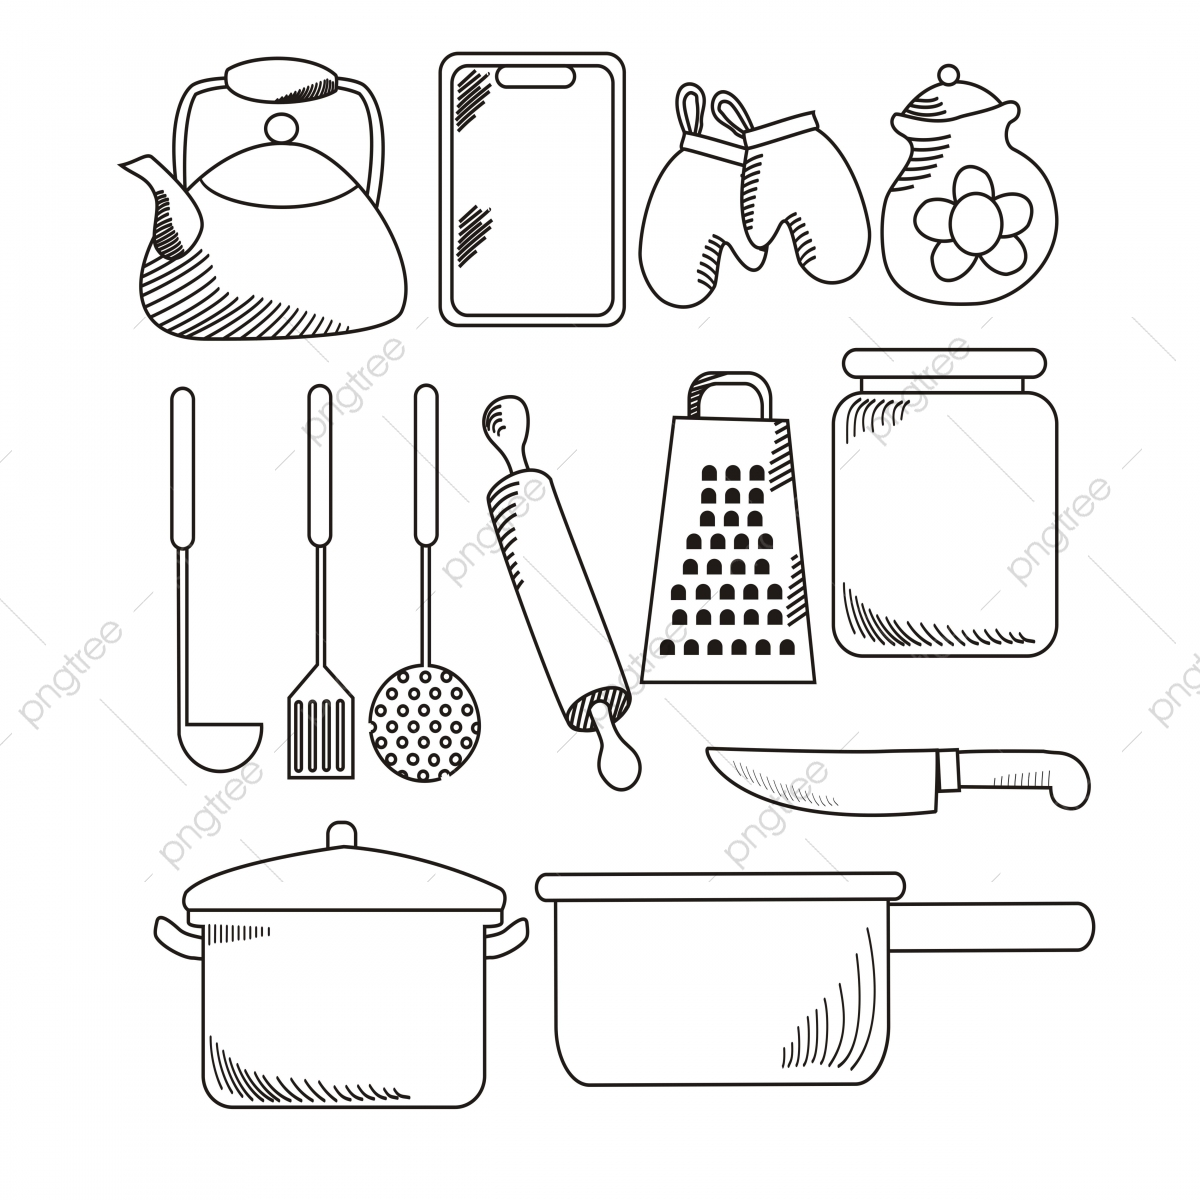 Kitchen Appliances Vector Illustration Kitchen Appliances